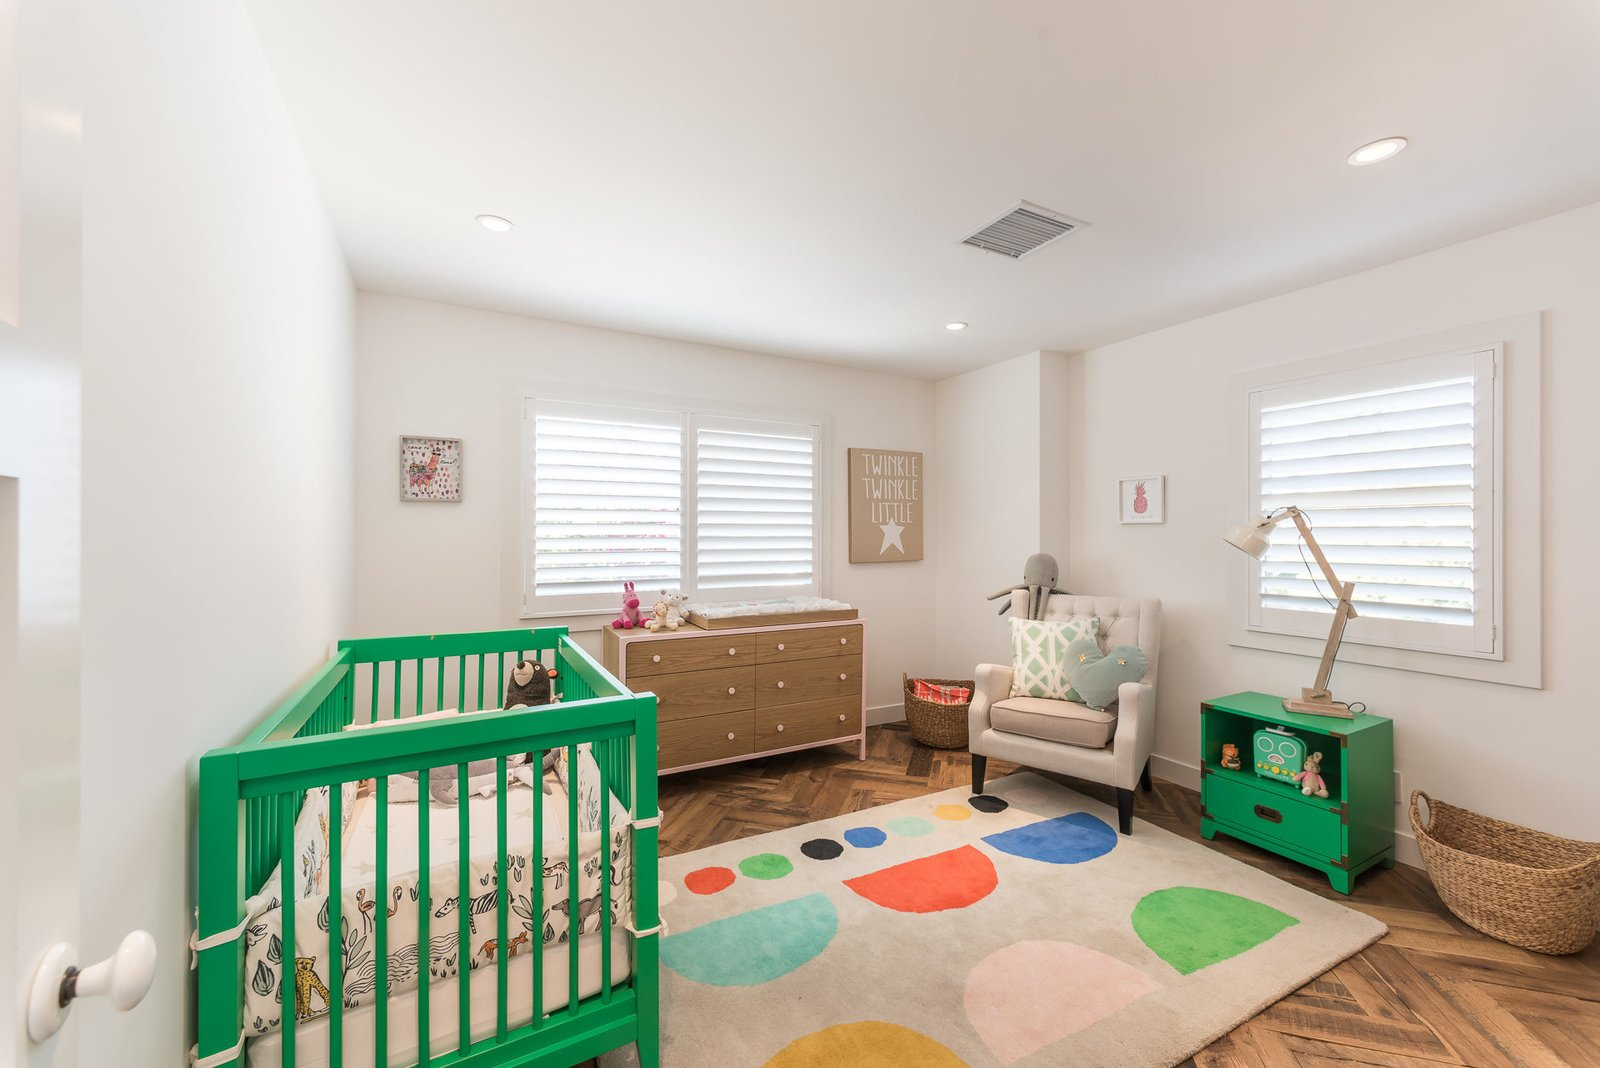 Mid-Century Meets Boho Chic by Zillow